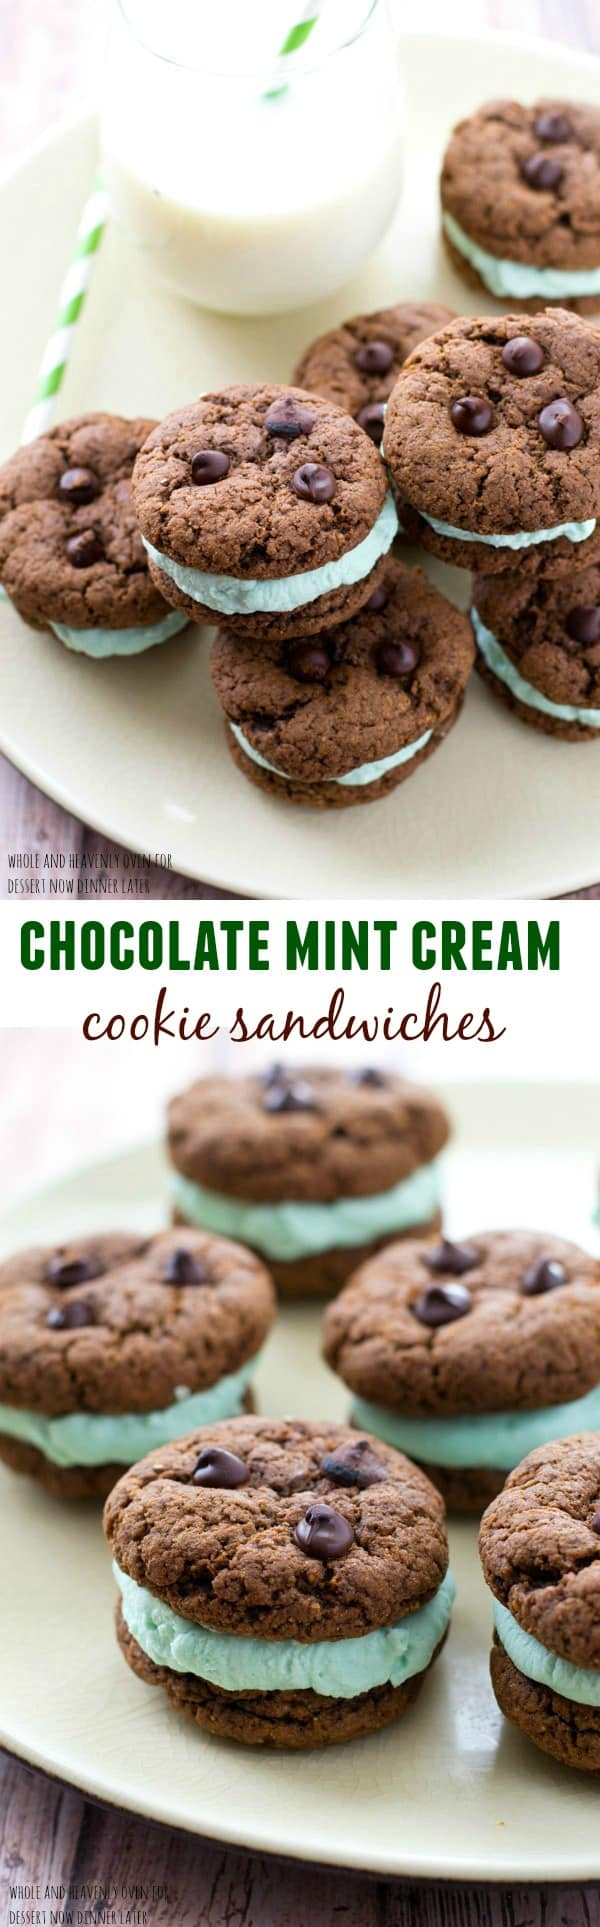 These festive cookie sandwiches are so simple to prepare, yet they're so much fun to eat! A fresh minty coconut cream sandwiched between two double-chocolate cookies is a match made in heaven.